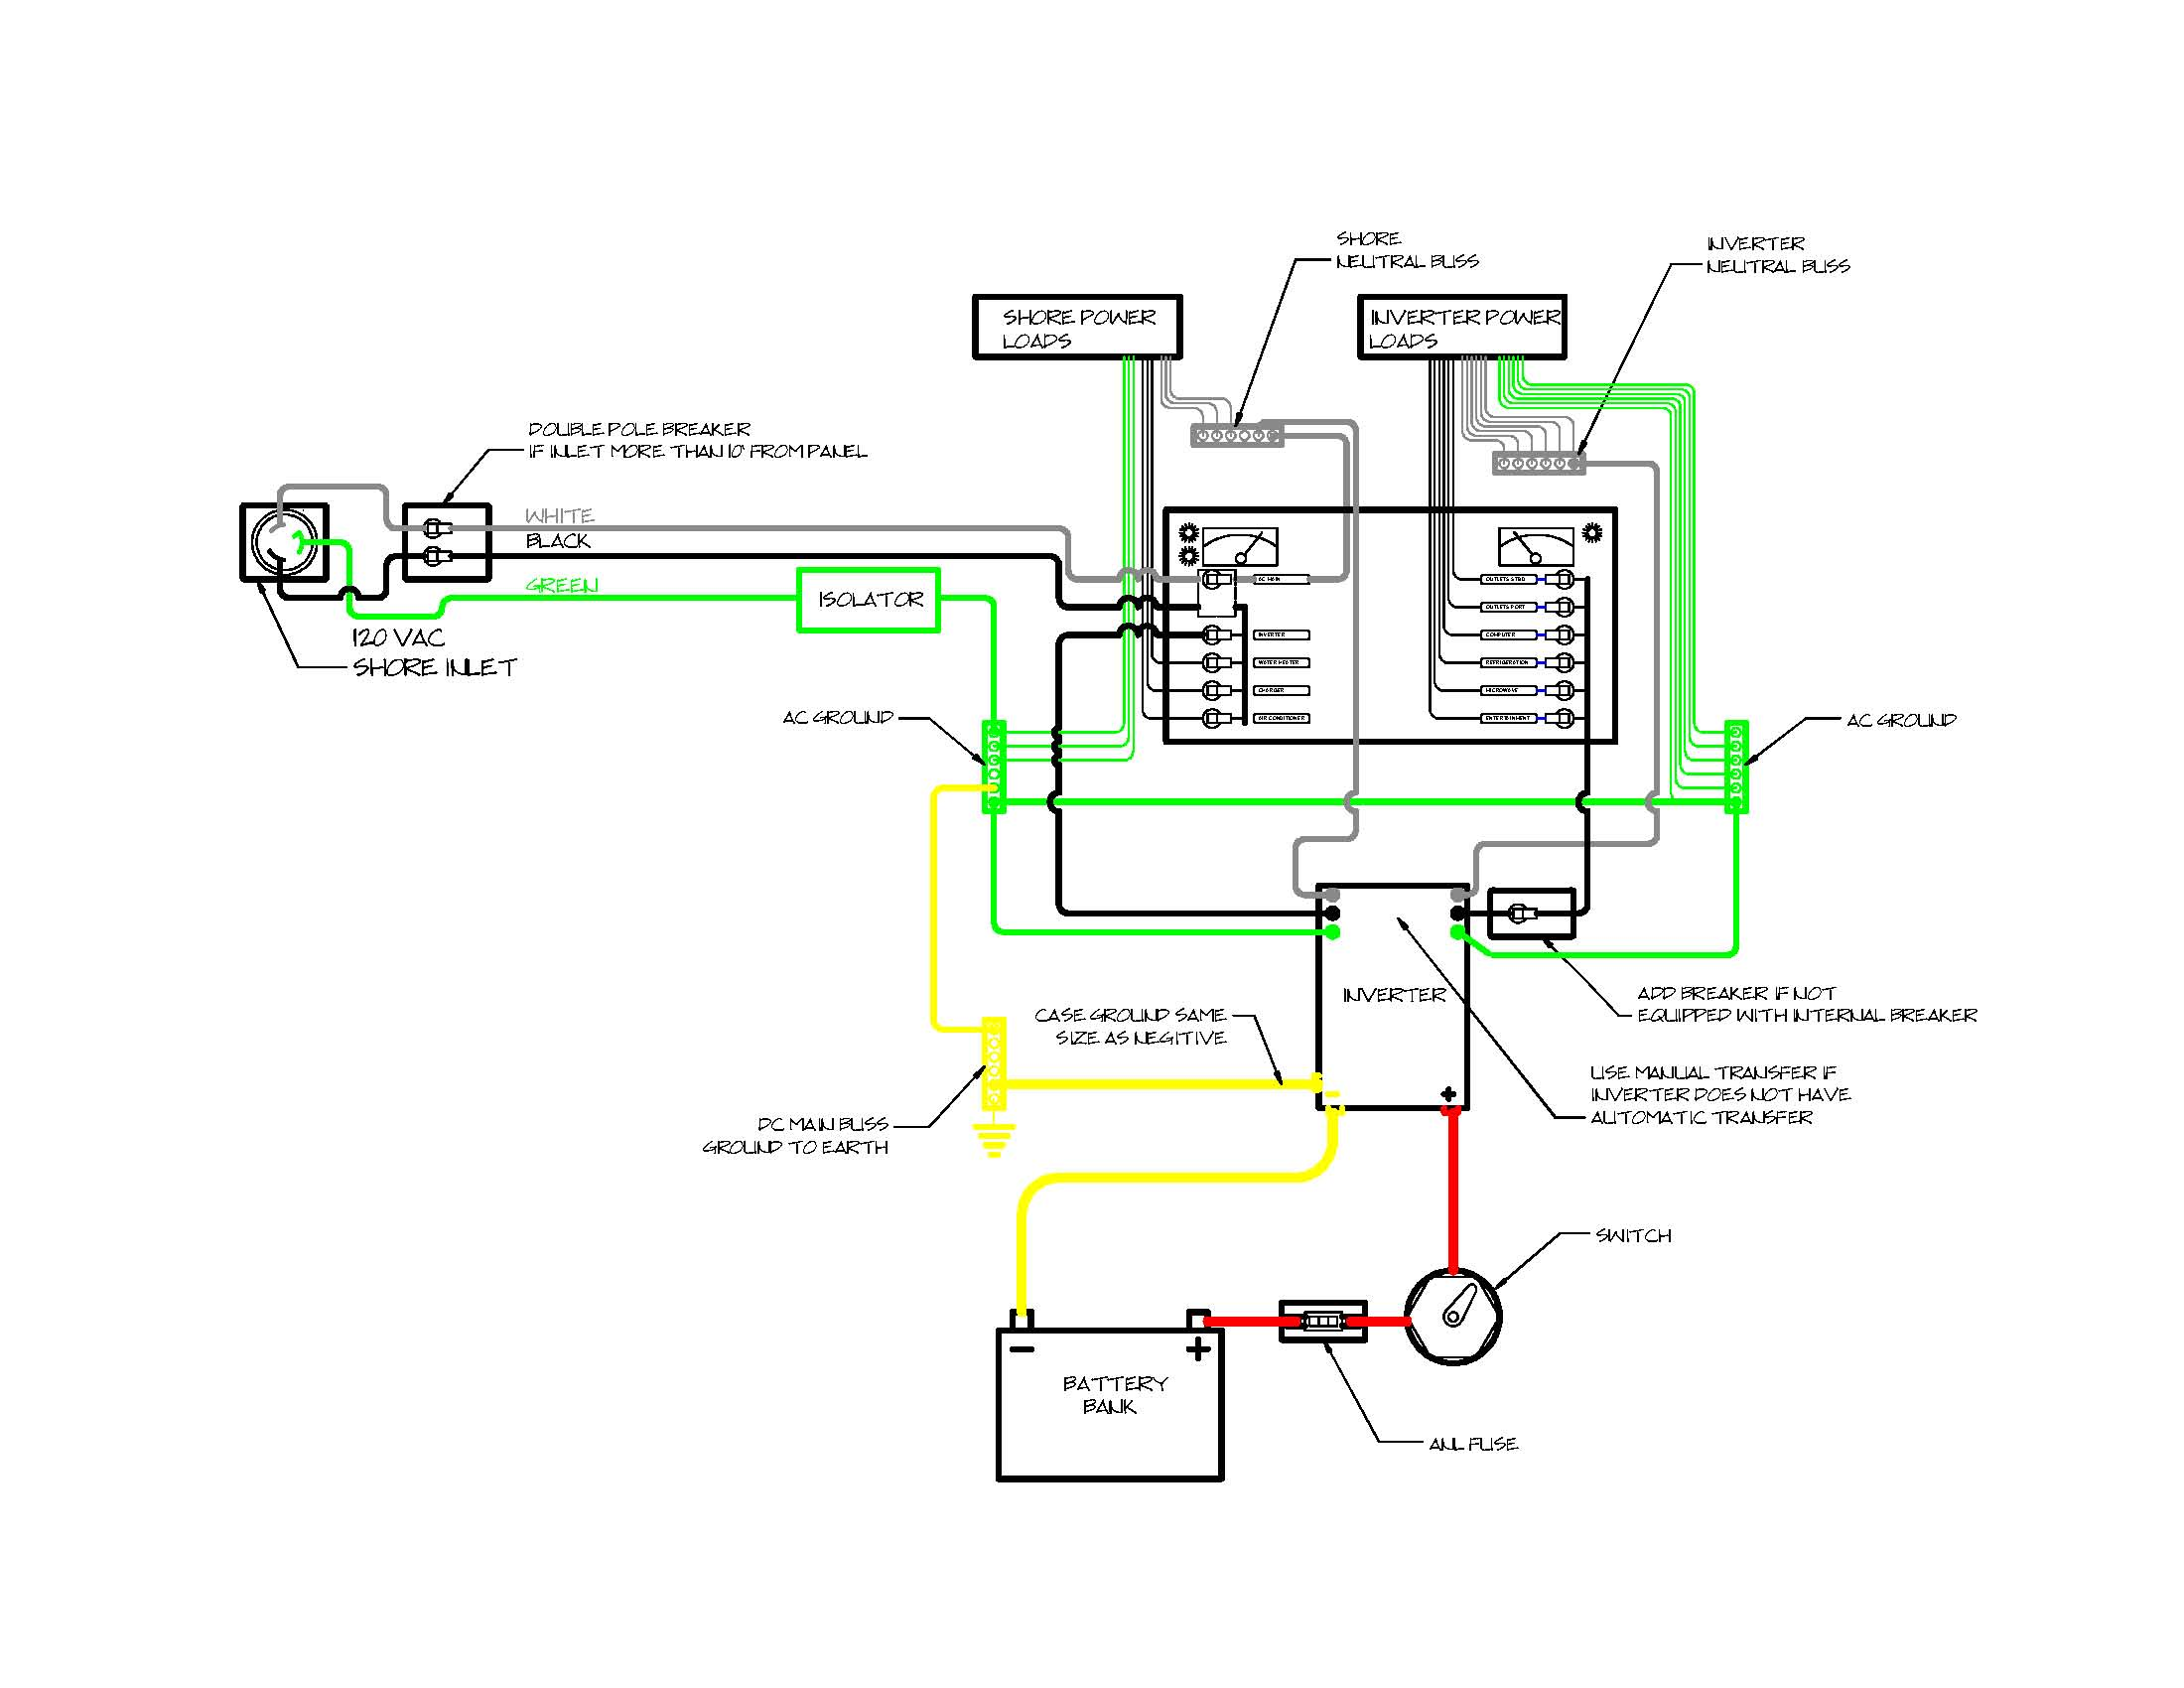 Inverter wiring simplejpg understanding inverter installations project boat zen home wiring diagram for inverter at pacquiaovsvargaslive.co